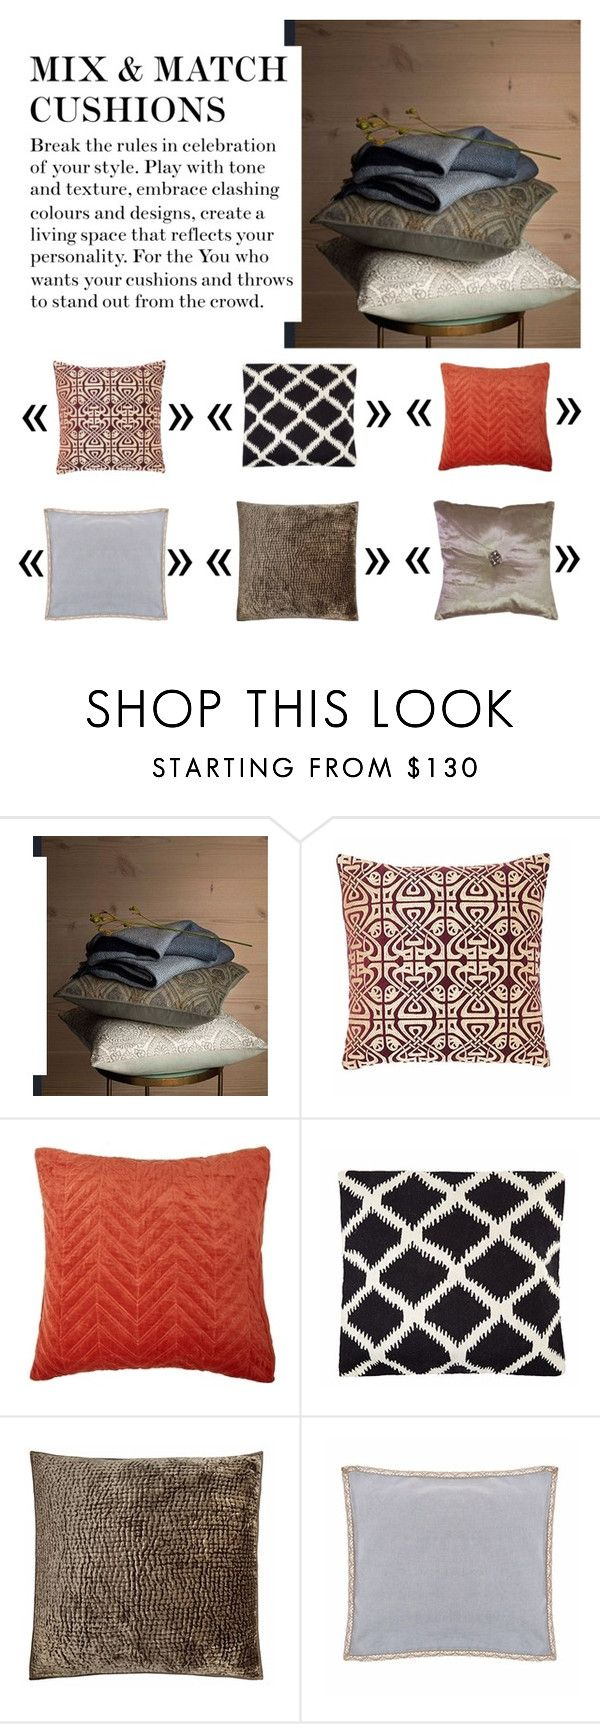 """""""MIX & MATCH CUSHIONS"""" by house-of-fraser ❤ liked on Polyvore featuring interior, interiors, interior design, home, home decor, interior decorating and House of Fraser"""